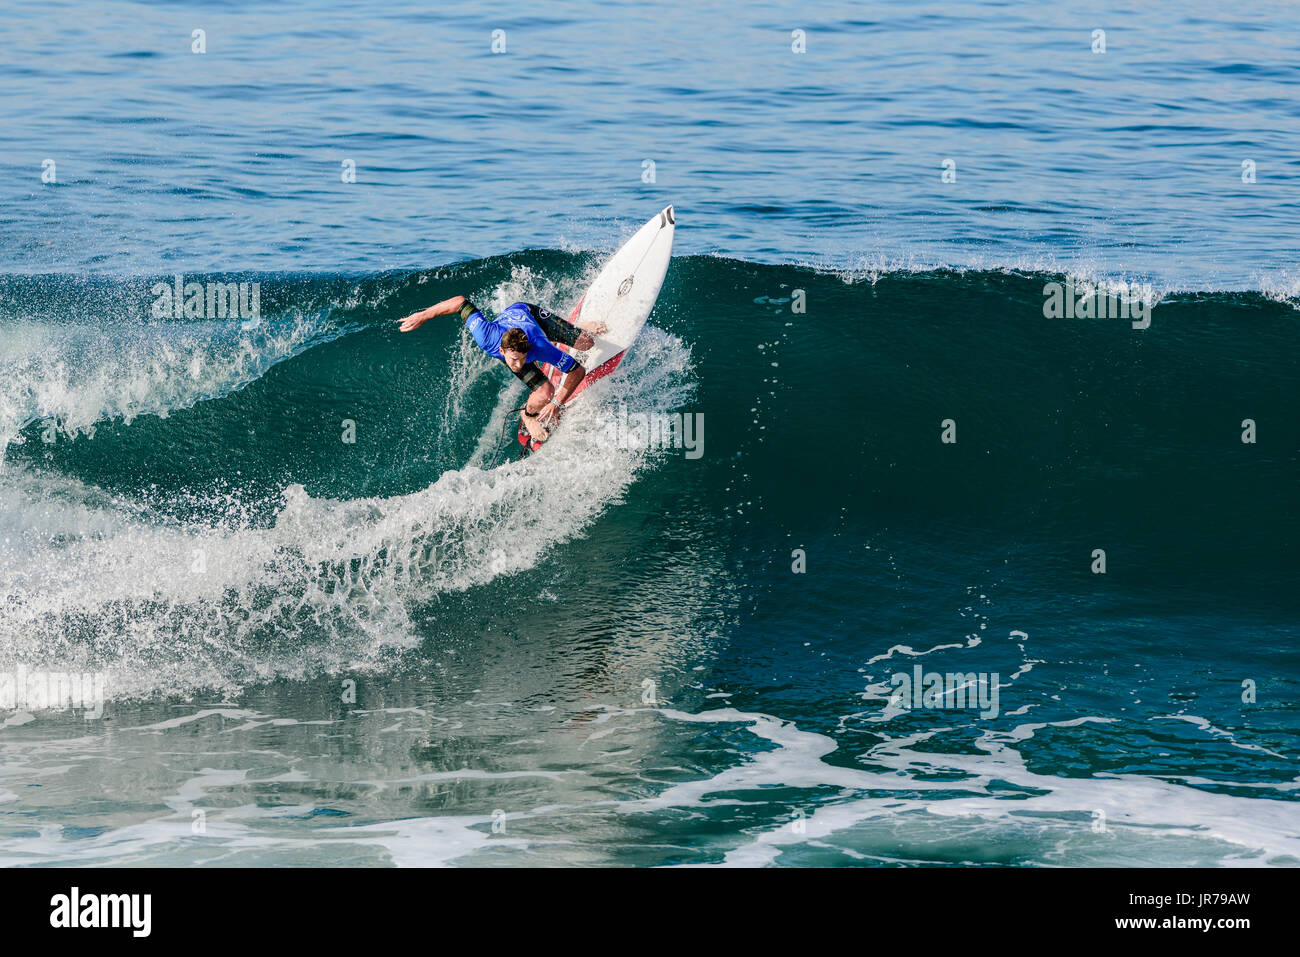 989f531ac4 Us Open Of Surfing Stock Photos   Us Open Of Surfing Stock Images ...